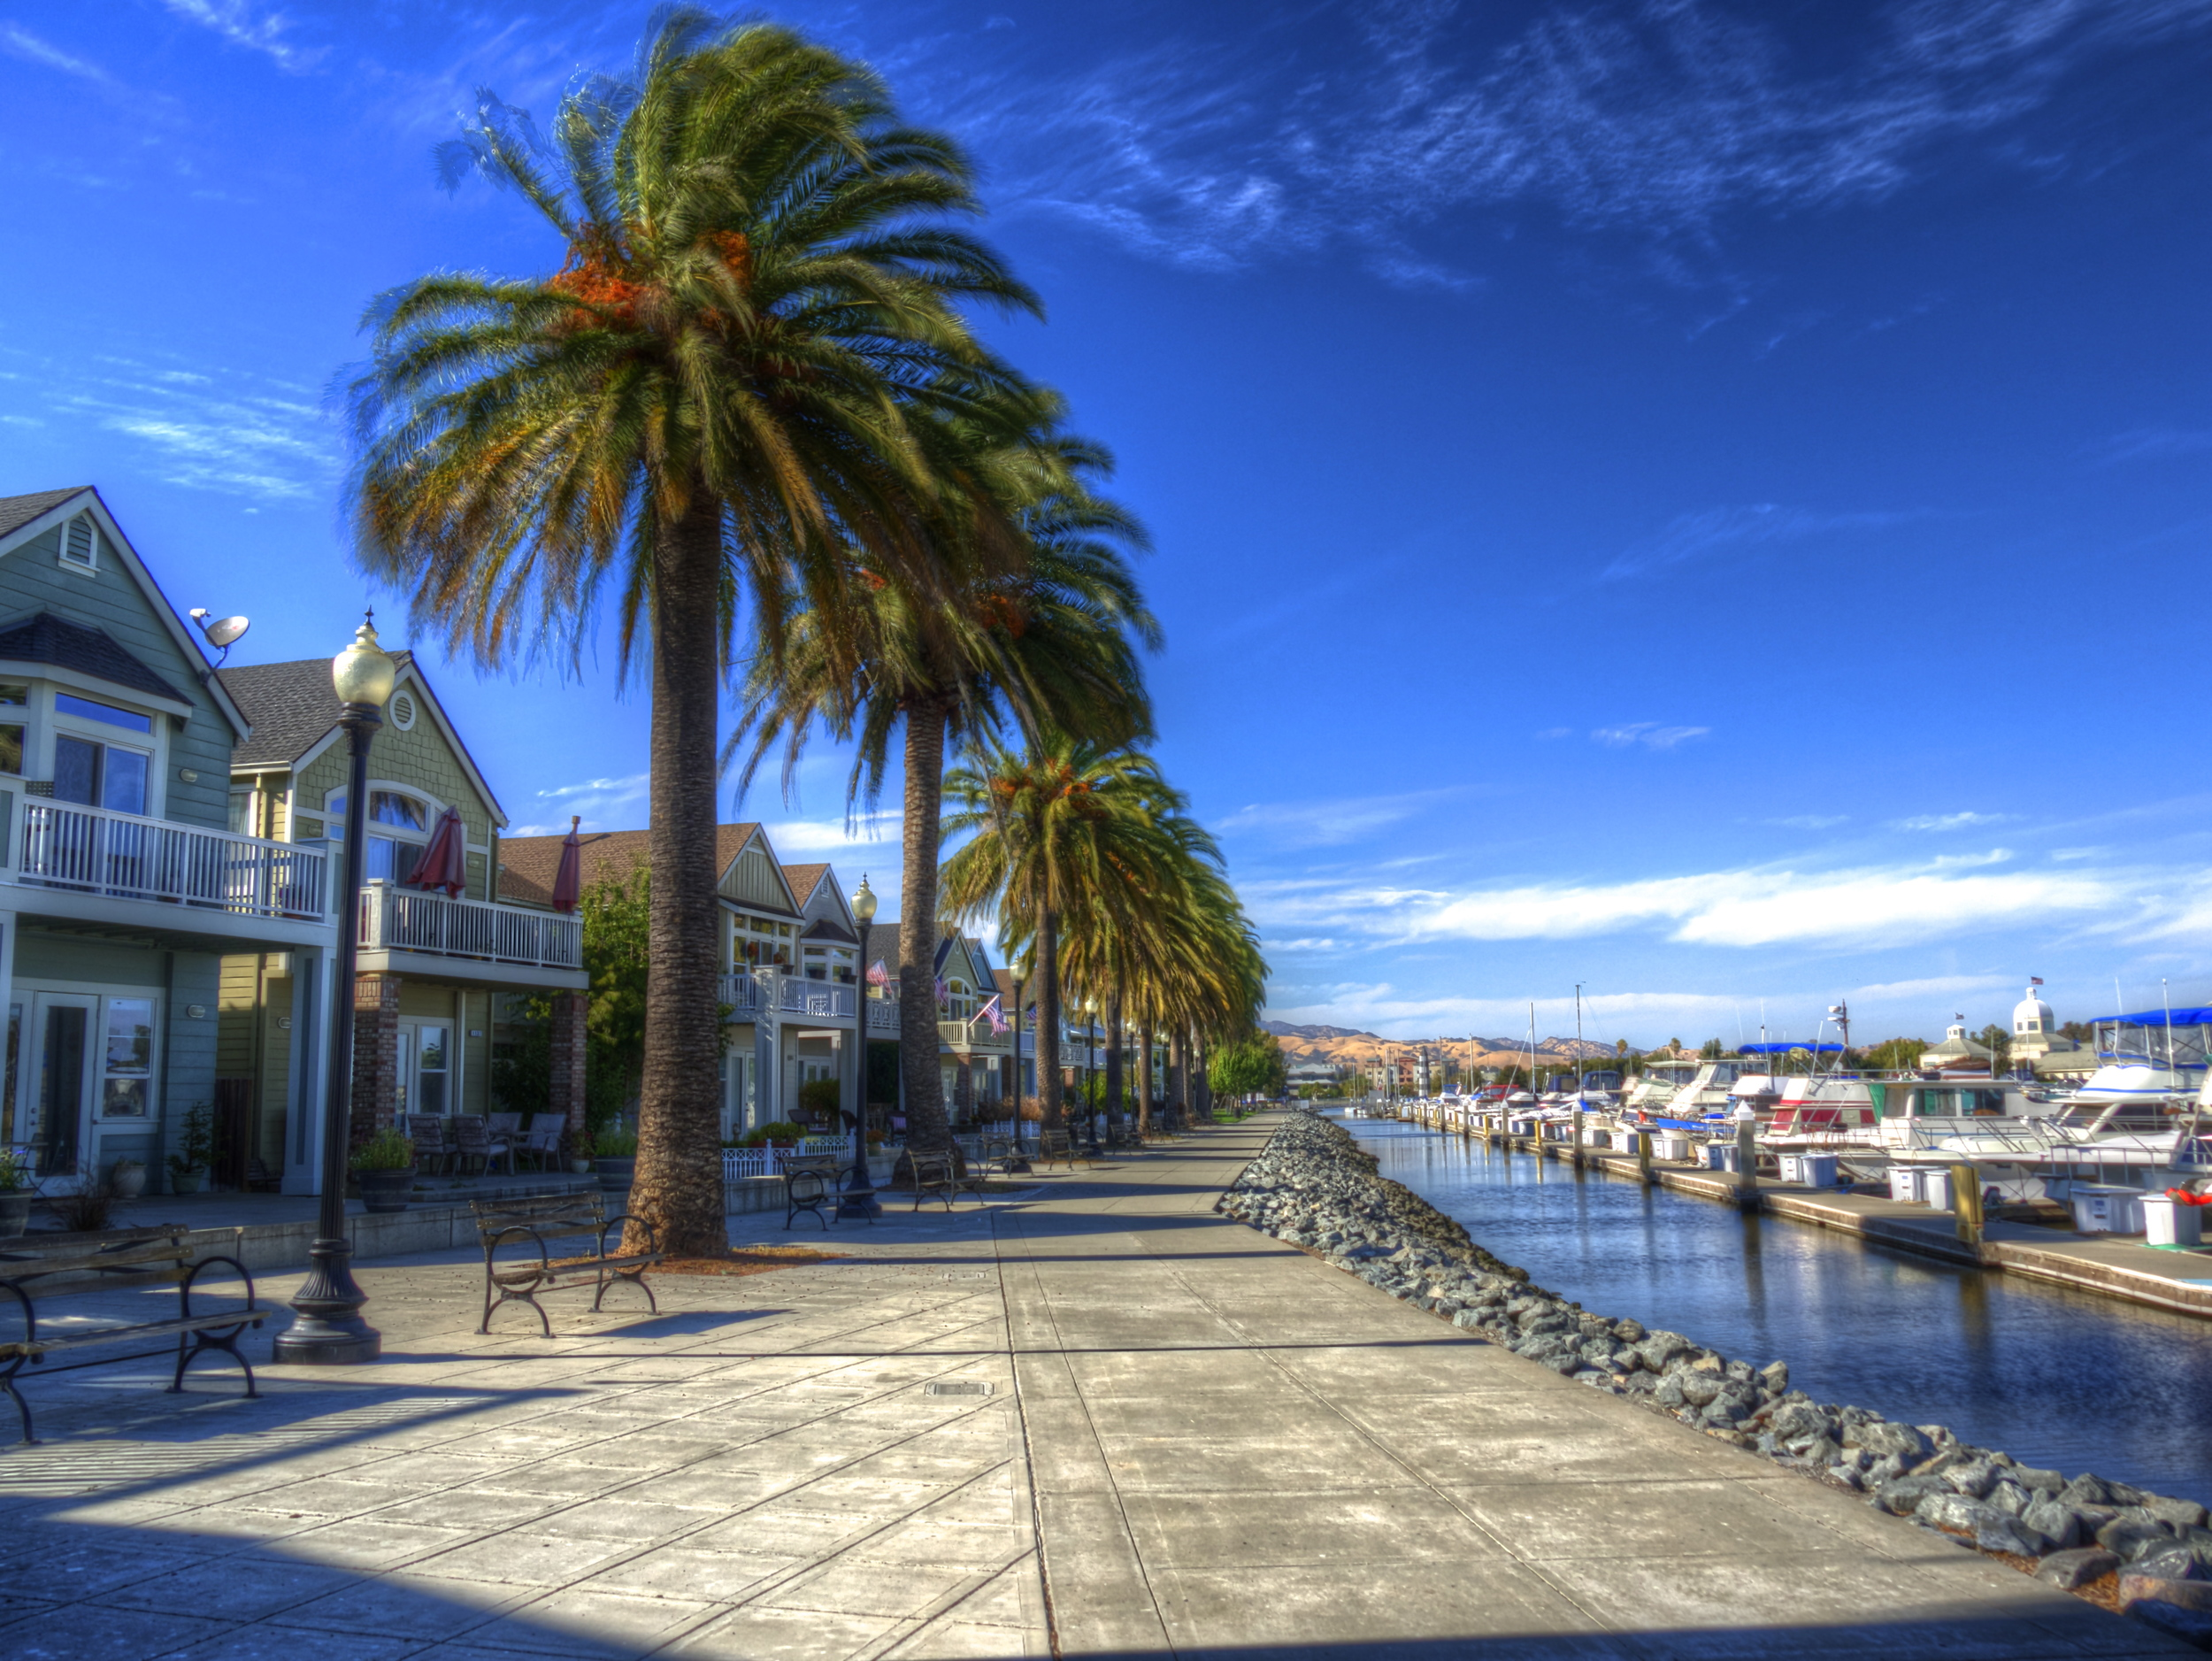 Palm Trees on the Suisun Waterfront